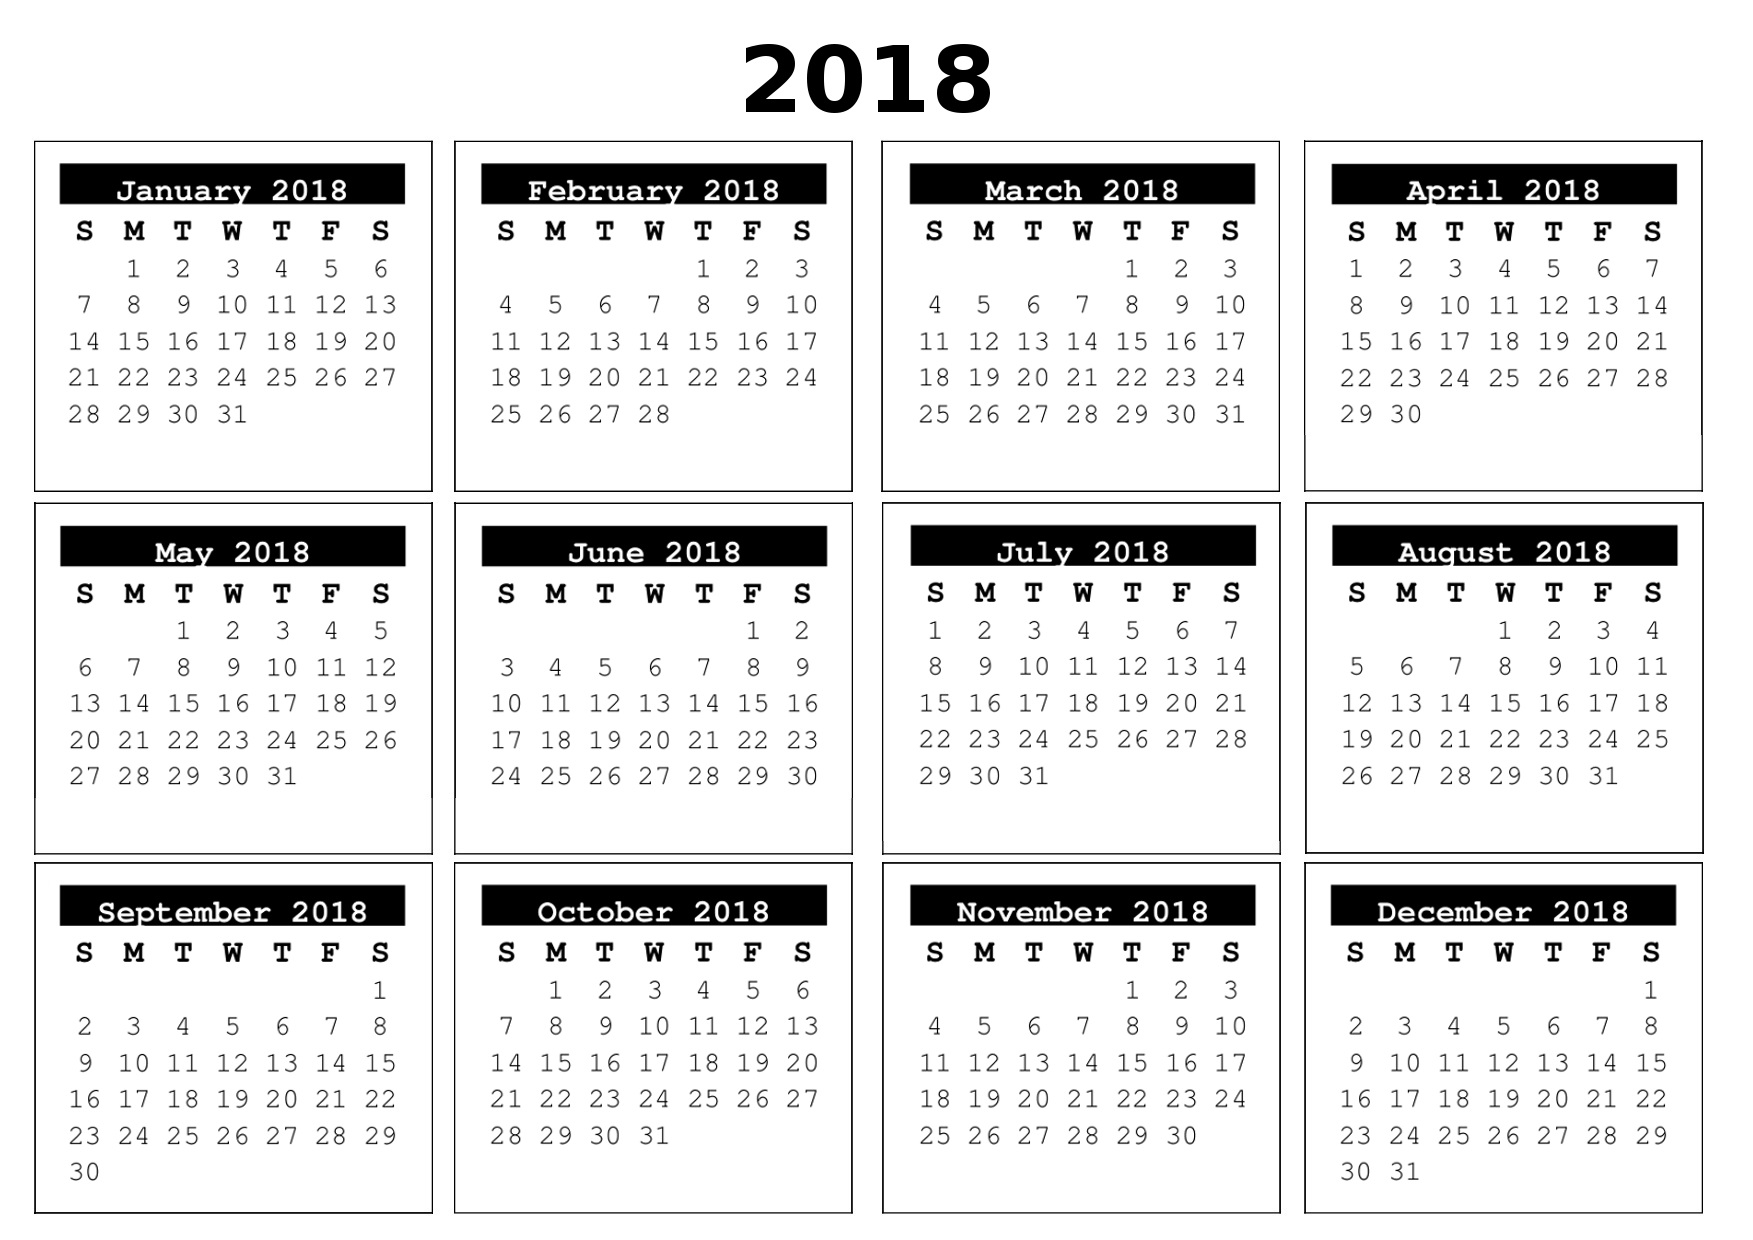 full year calendar 2018 Ideal.vistalist.co